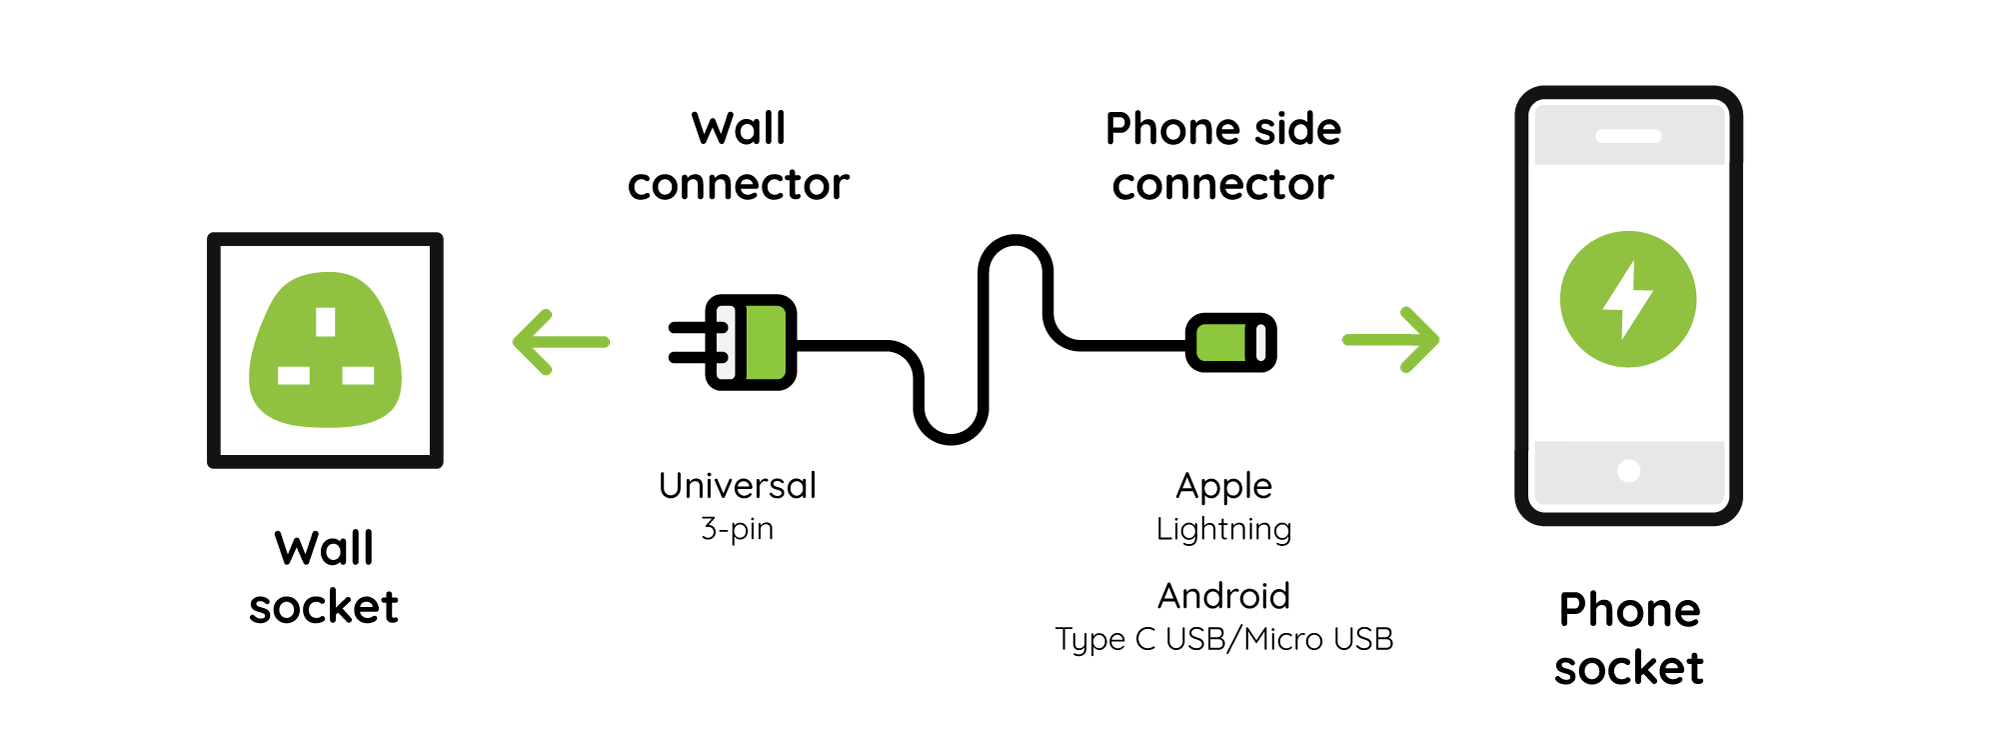 info-oecd: [Download 28+] Apple Charger Connector Diagram